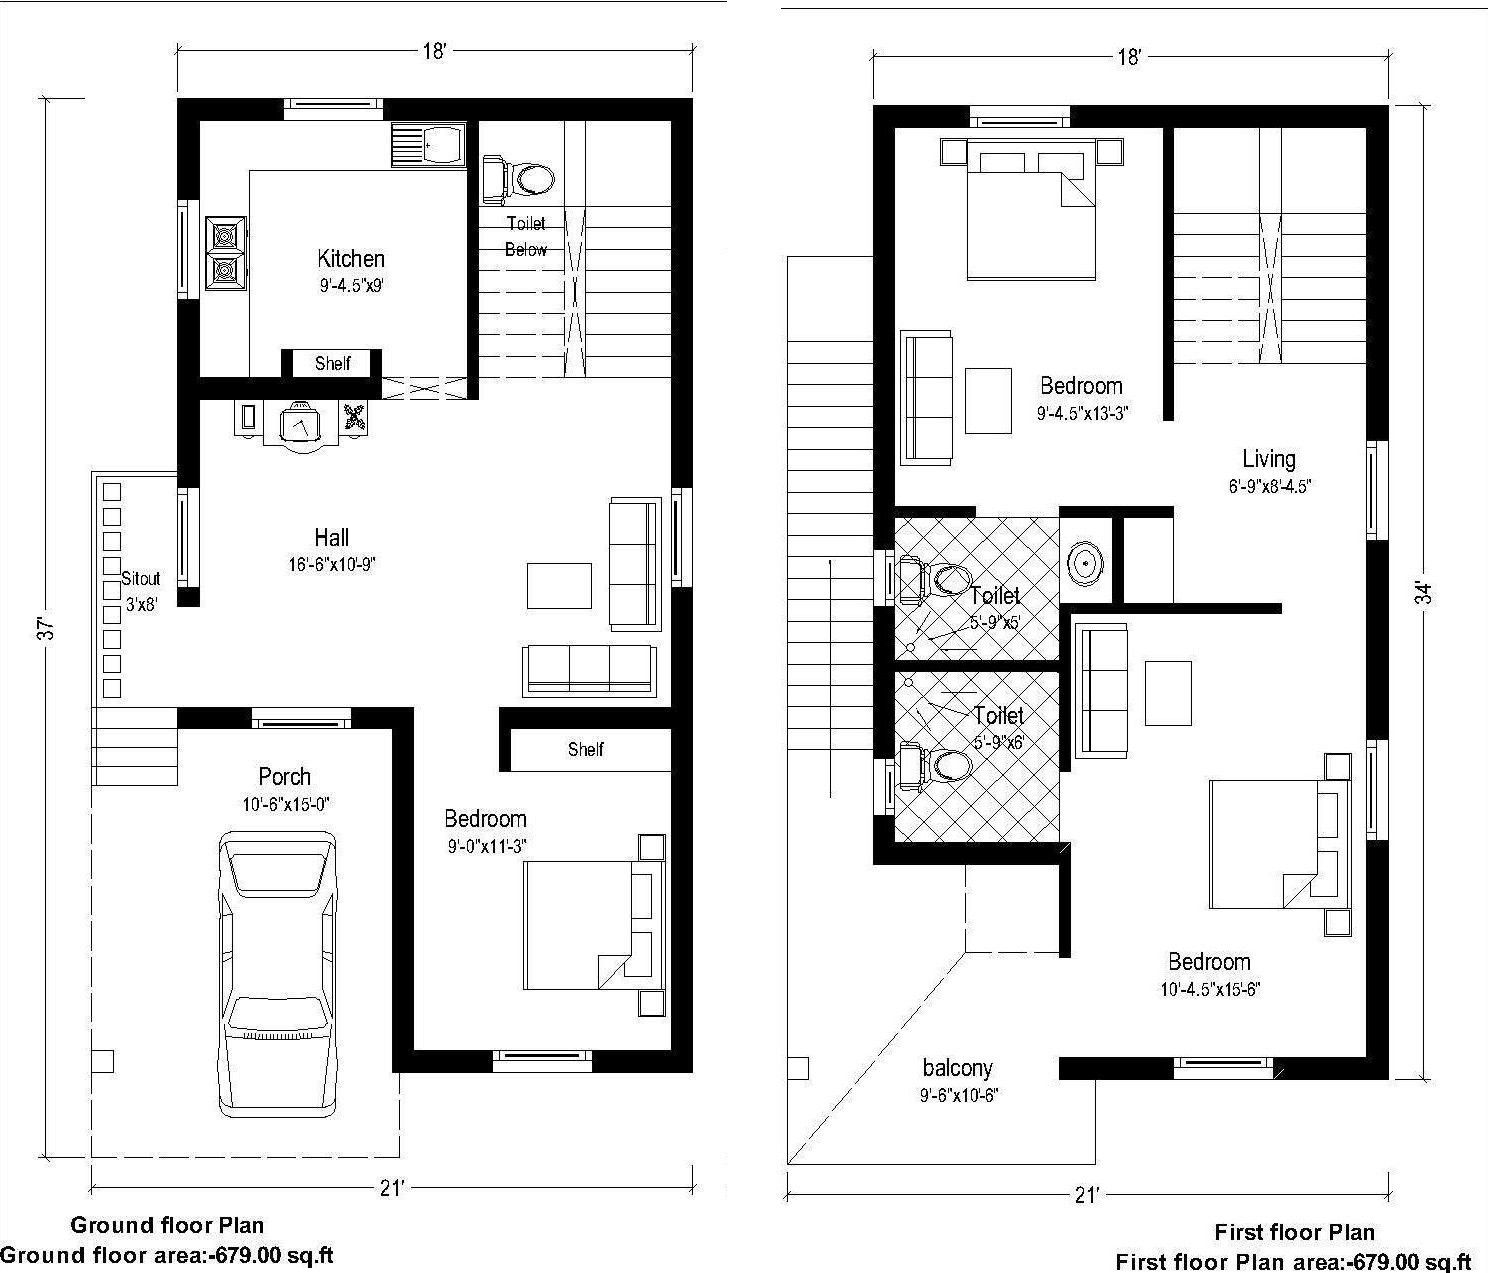 House Modern 20 X 30 Plans Ripping 20x30 20x40 House Plans Duplex House Plans House Layout Plans